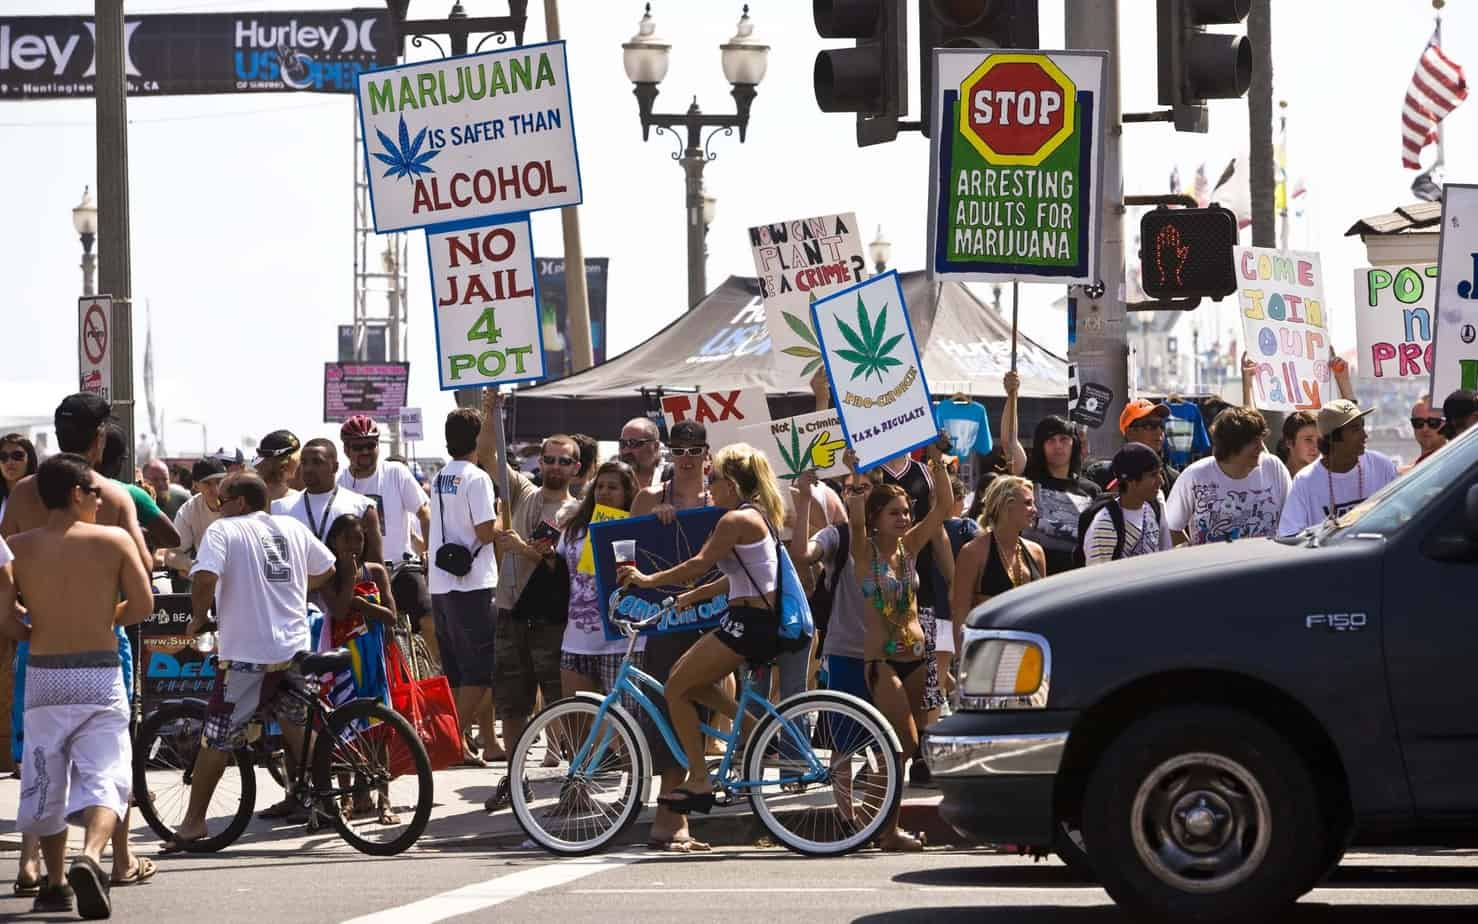 Gallup Poll Shows New High in Approval for Making Marijuana Legal. Not just for Recreational Weed States or Medical Marijuana States, but Nationwide. It is the latest Marijuana News